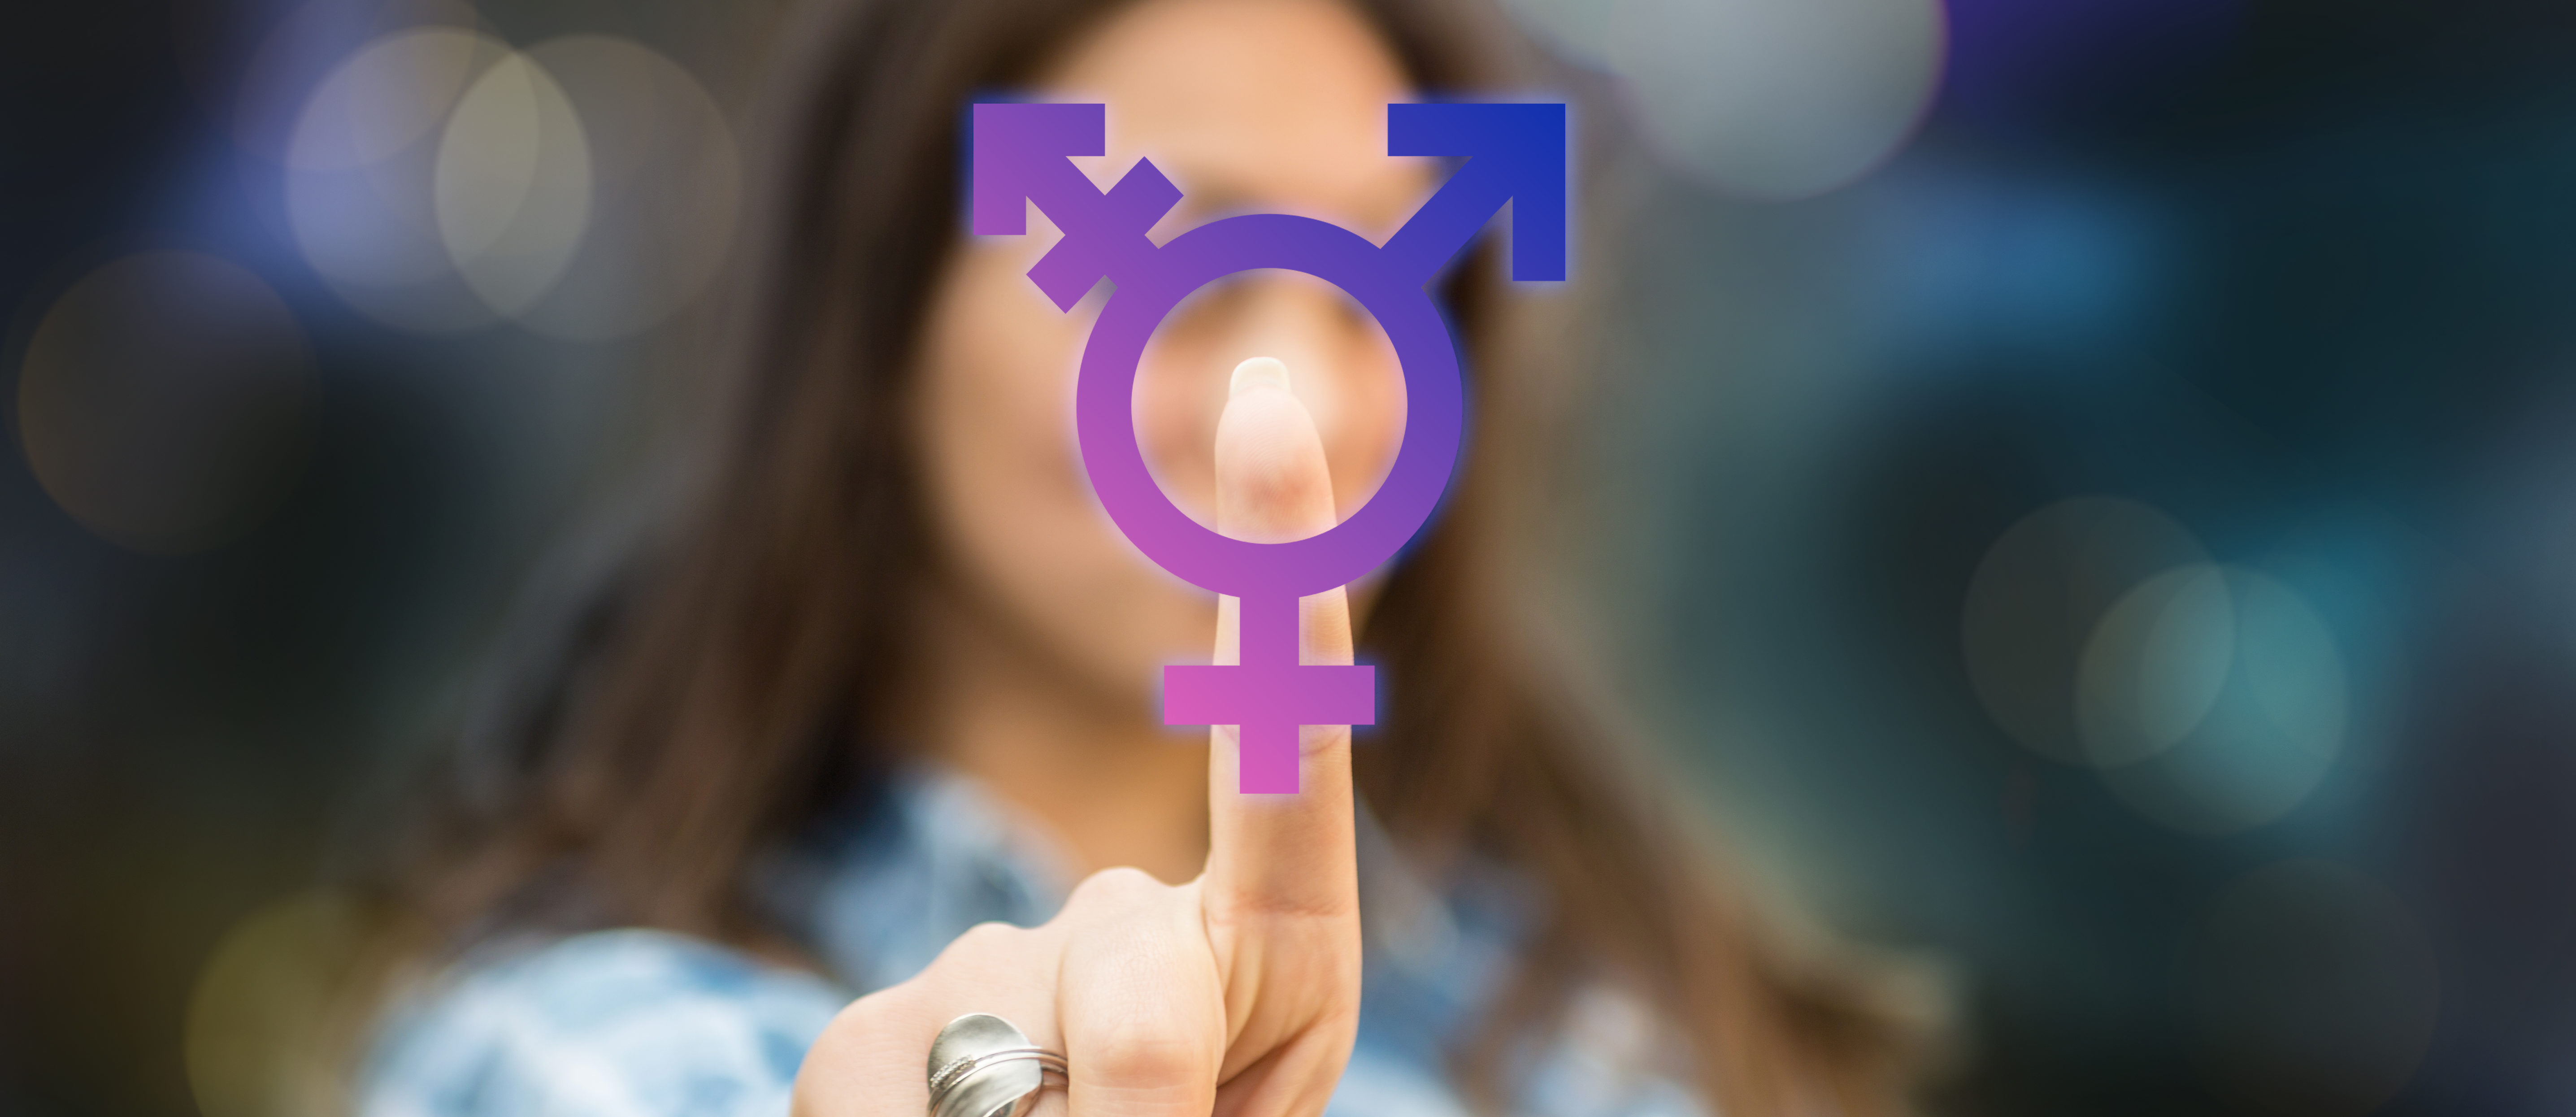 Person pressing transgender symbol on touch screen. (Shutterstock/FotoCuisinette)